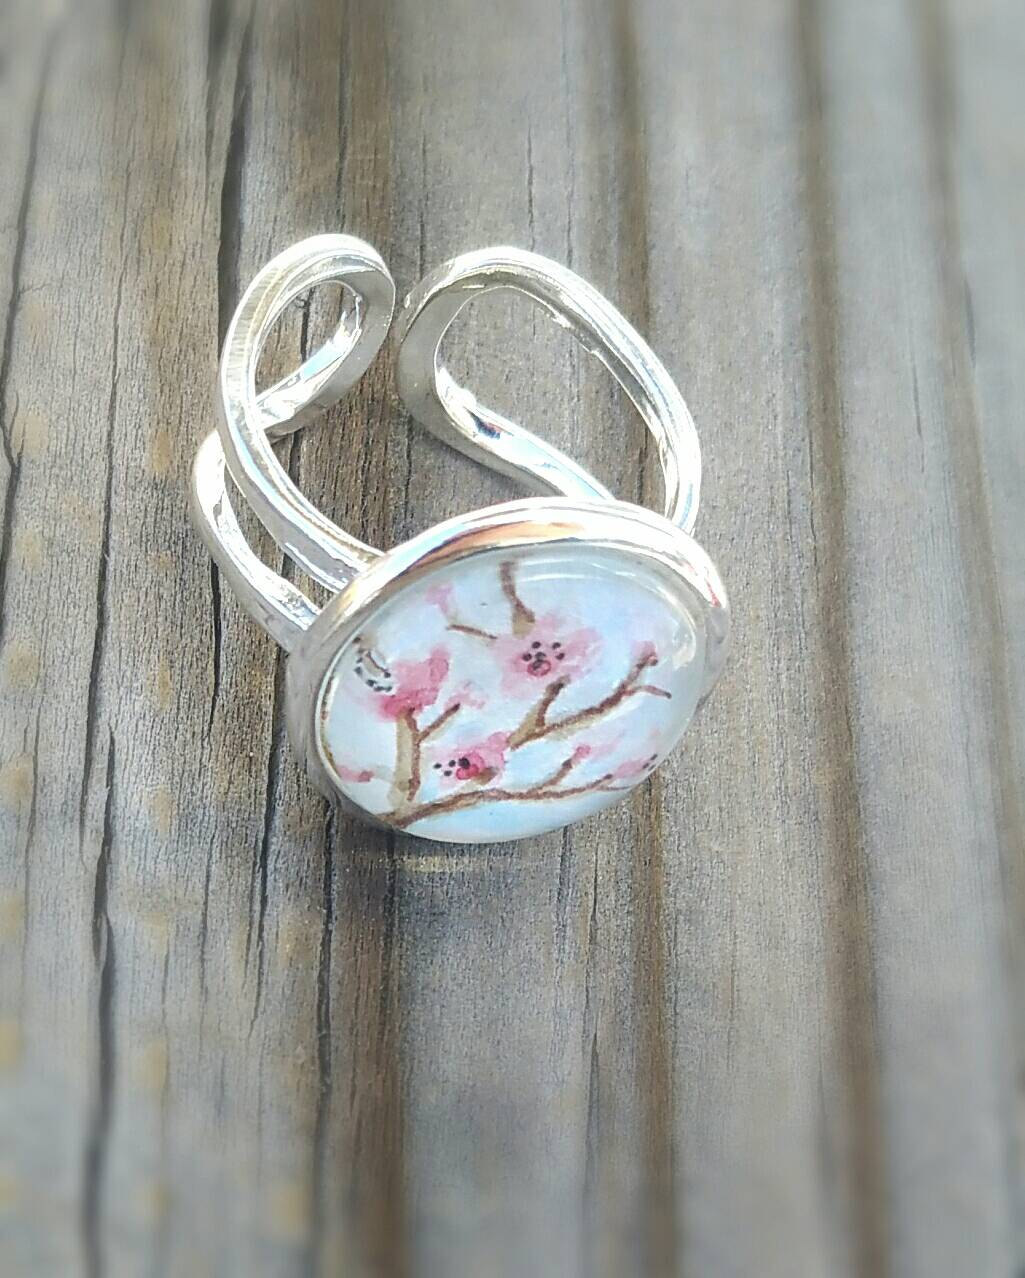 Cherry Blossoms ring, pink cherry blossoms, watercolor painted jewelry, Spring pink or coral and teal turquoise jewelry, silver plated